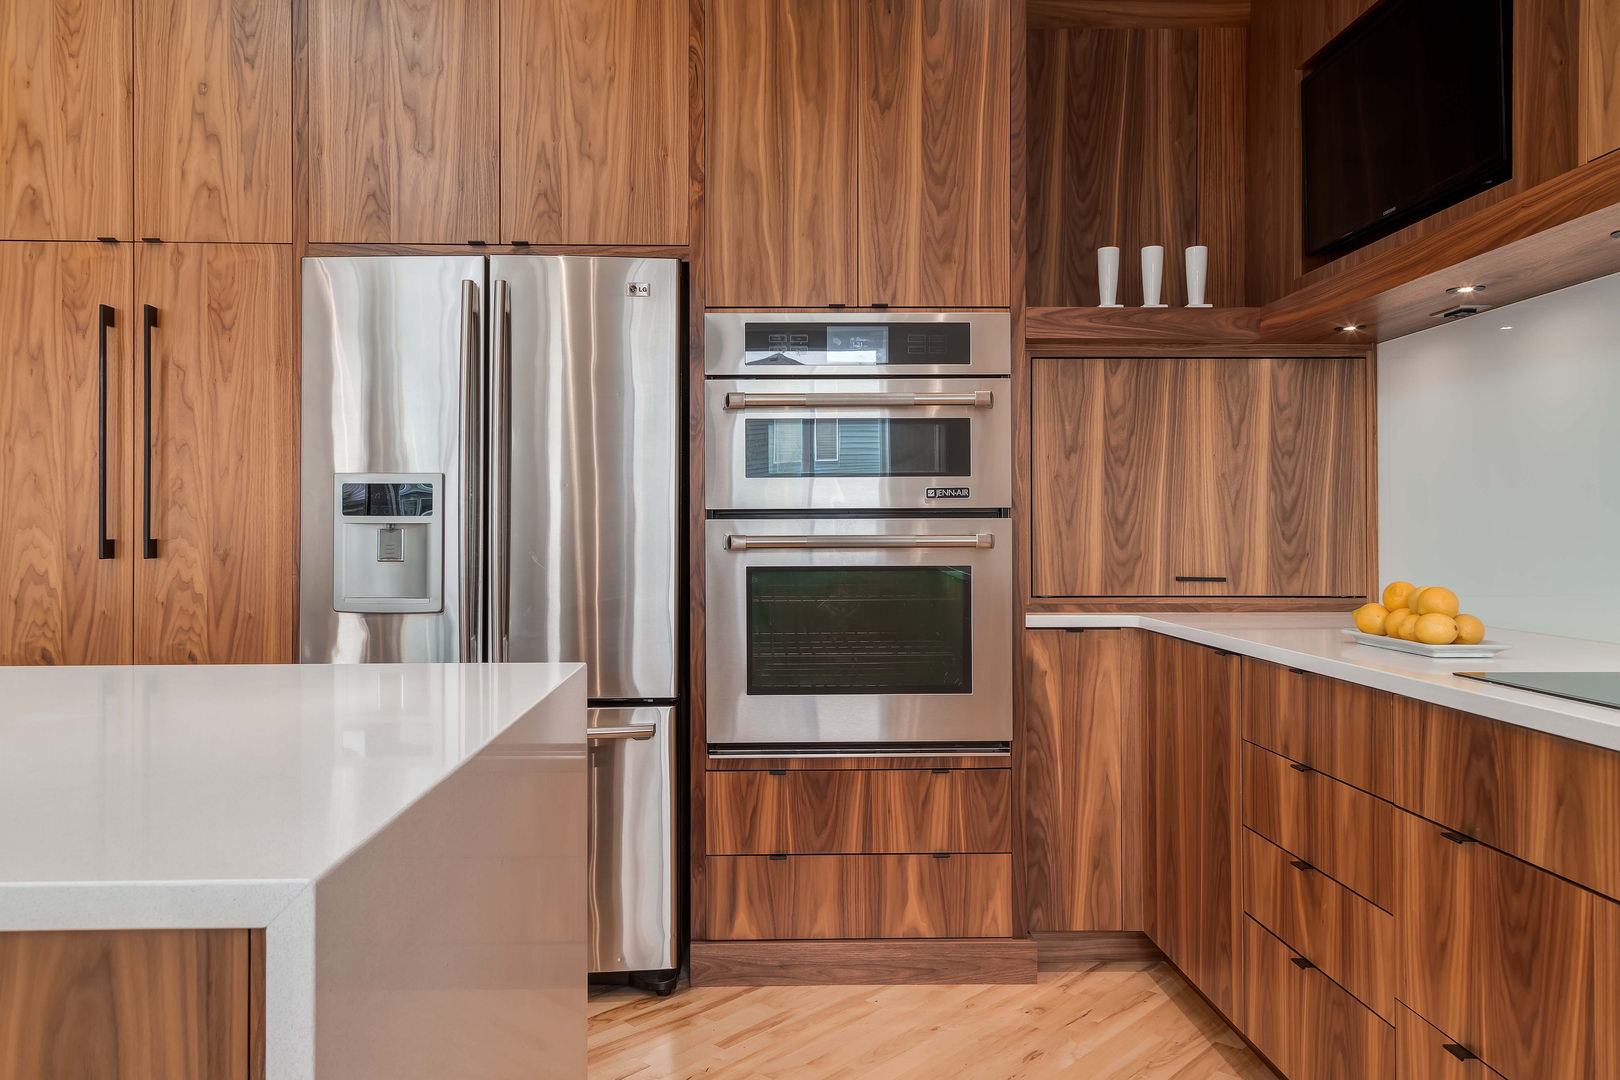 The stainless steel appliances here enhance the natural wood grain pattern.